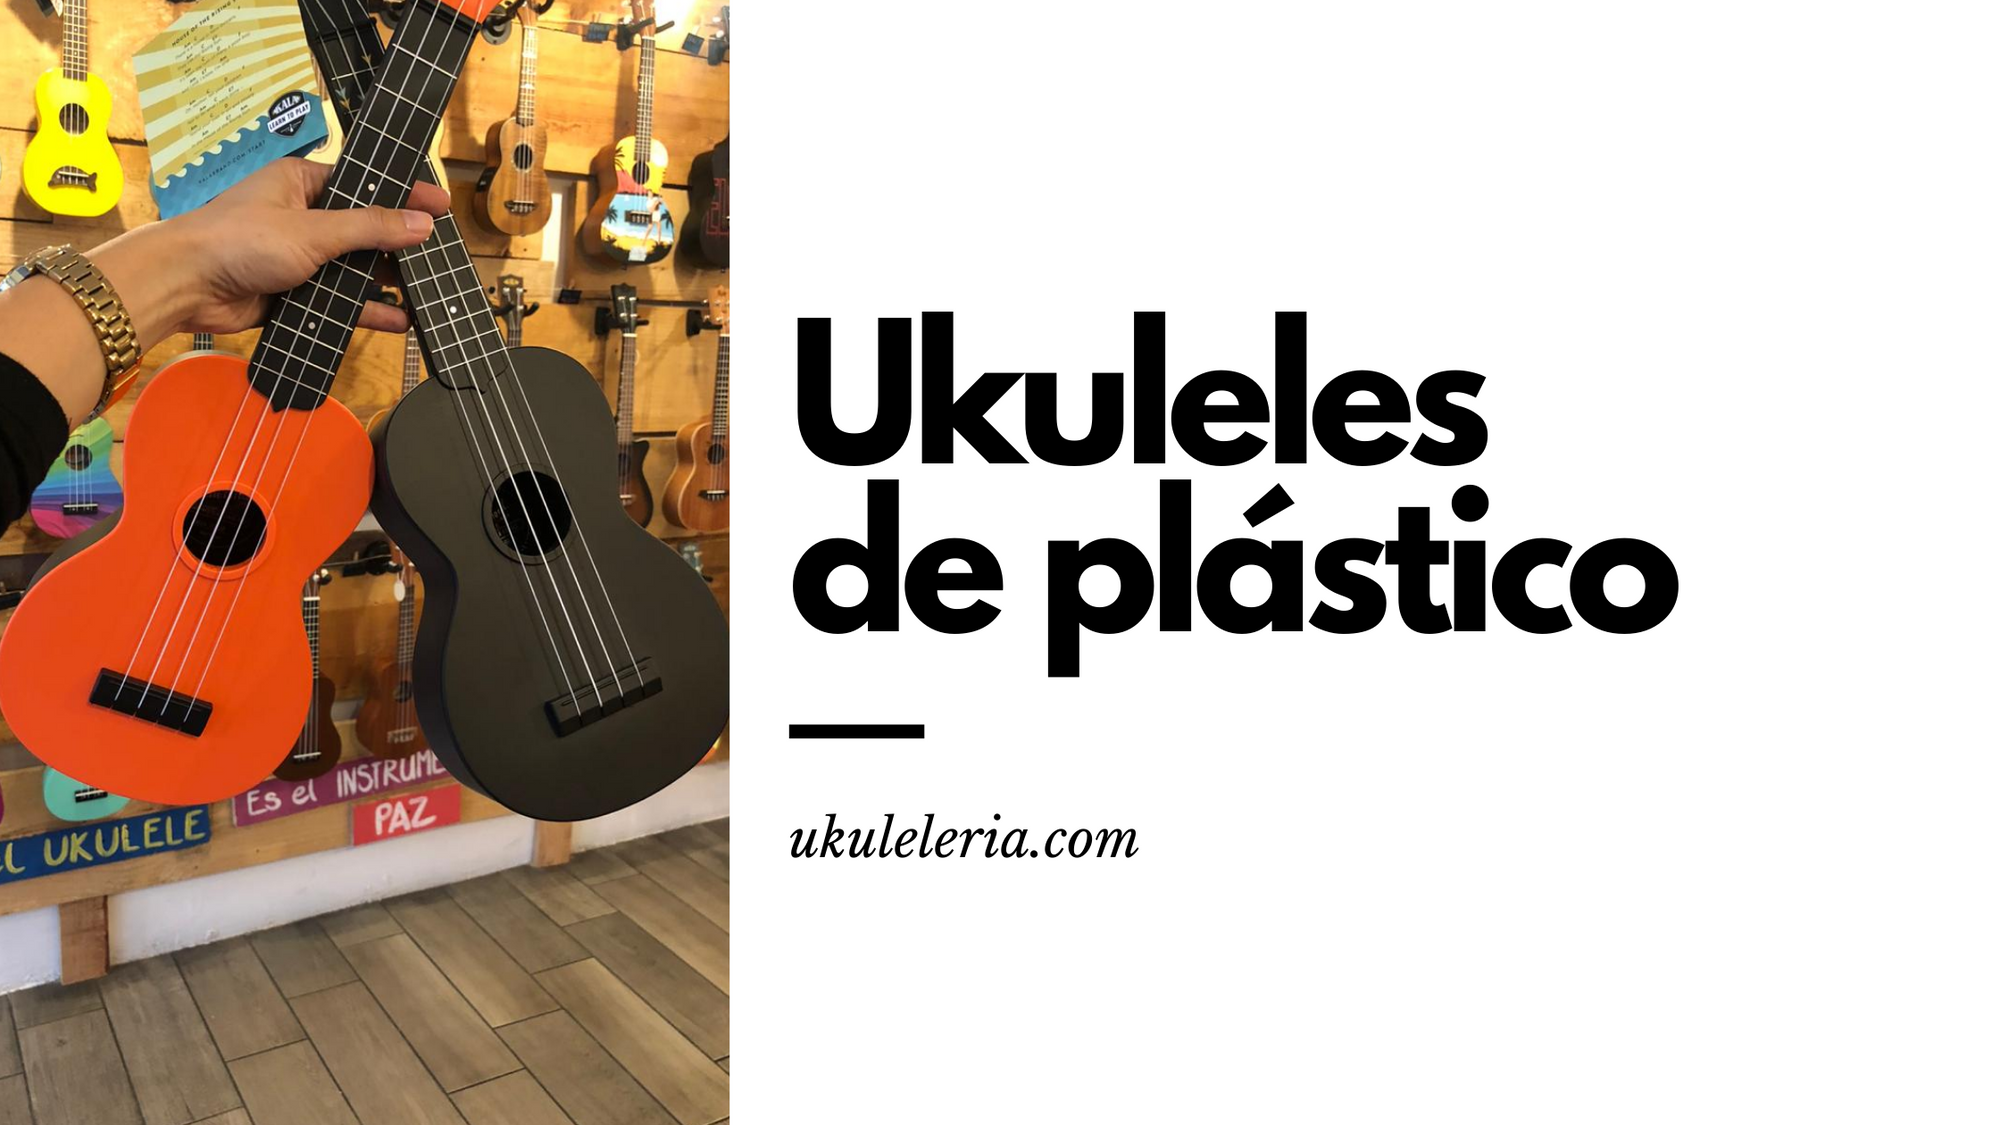 Is a plastic ukulele good to hear?